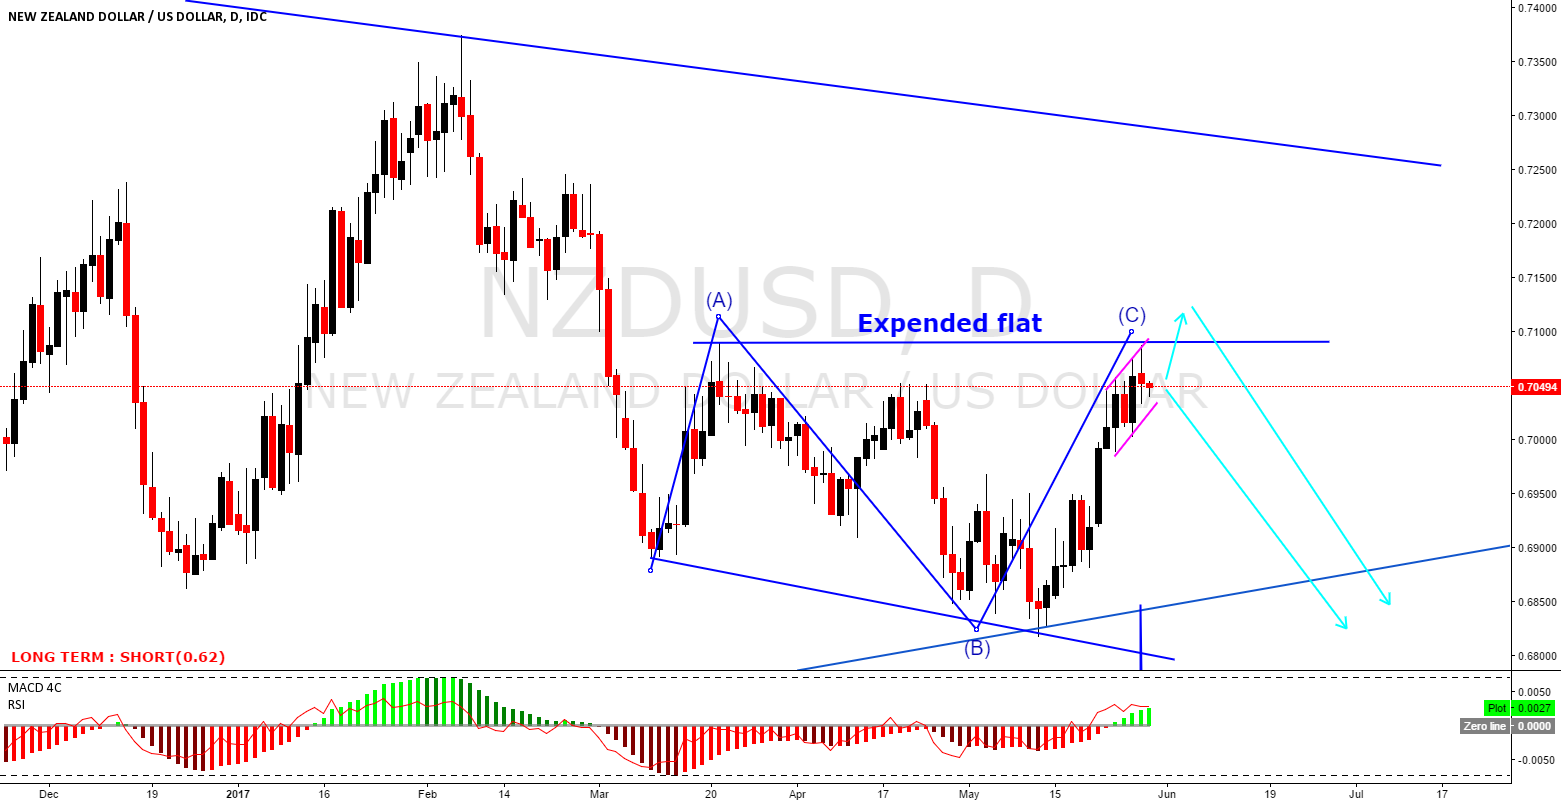 NZDUSD expended flat going down